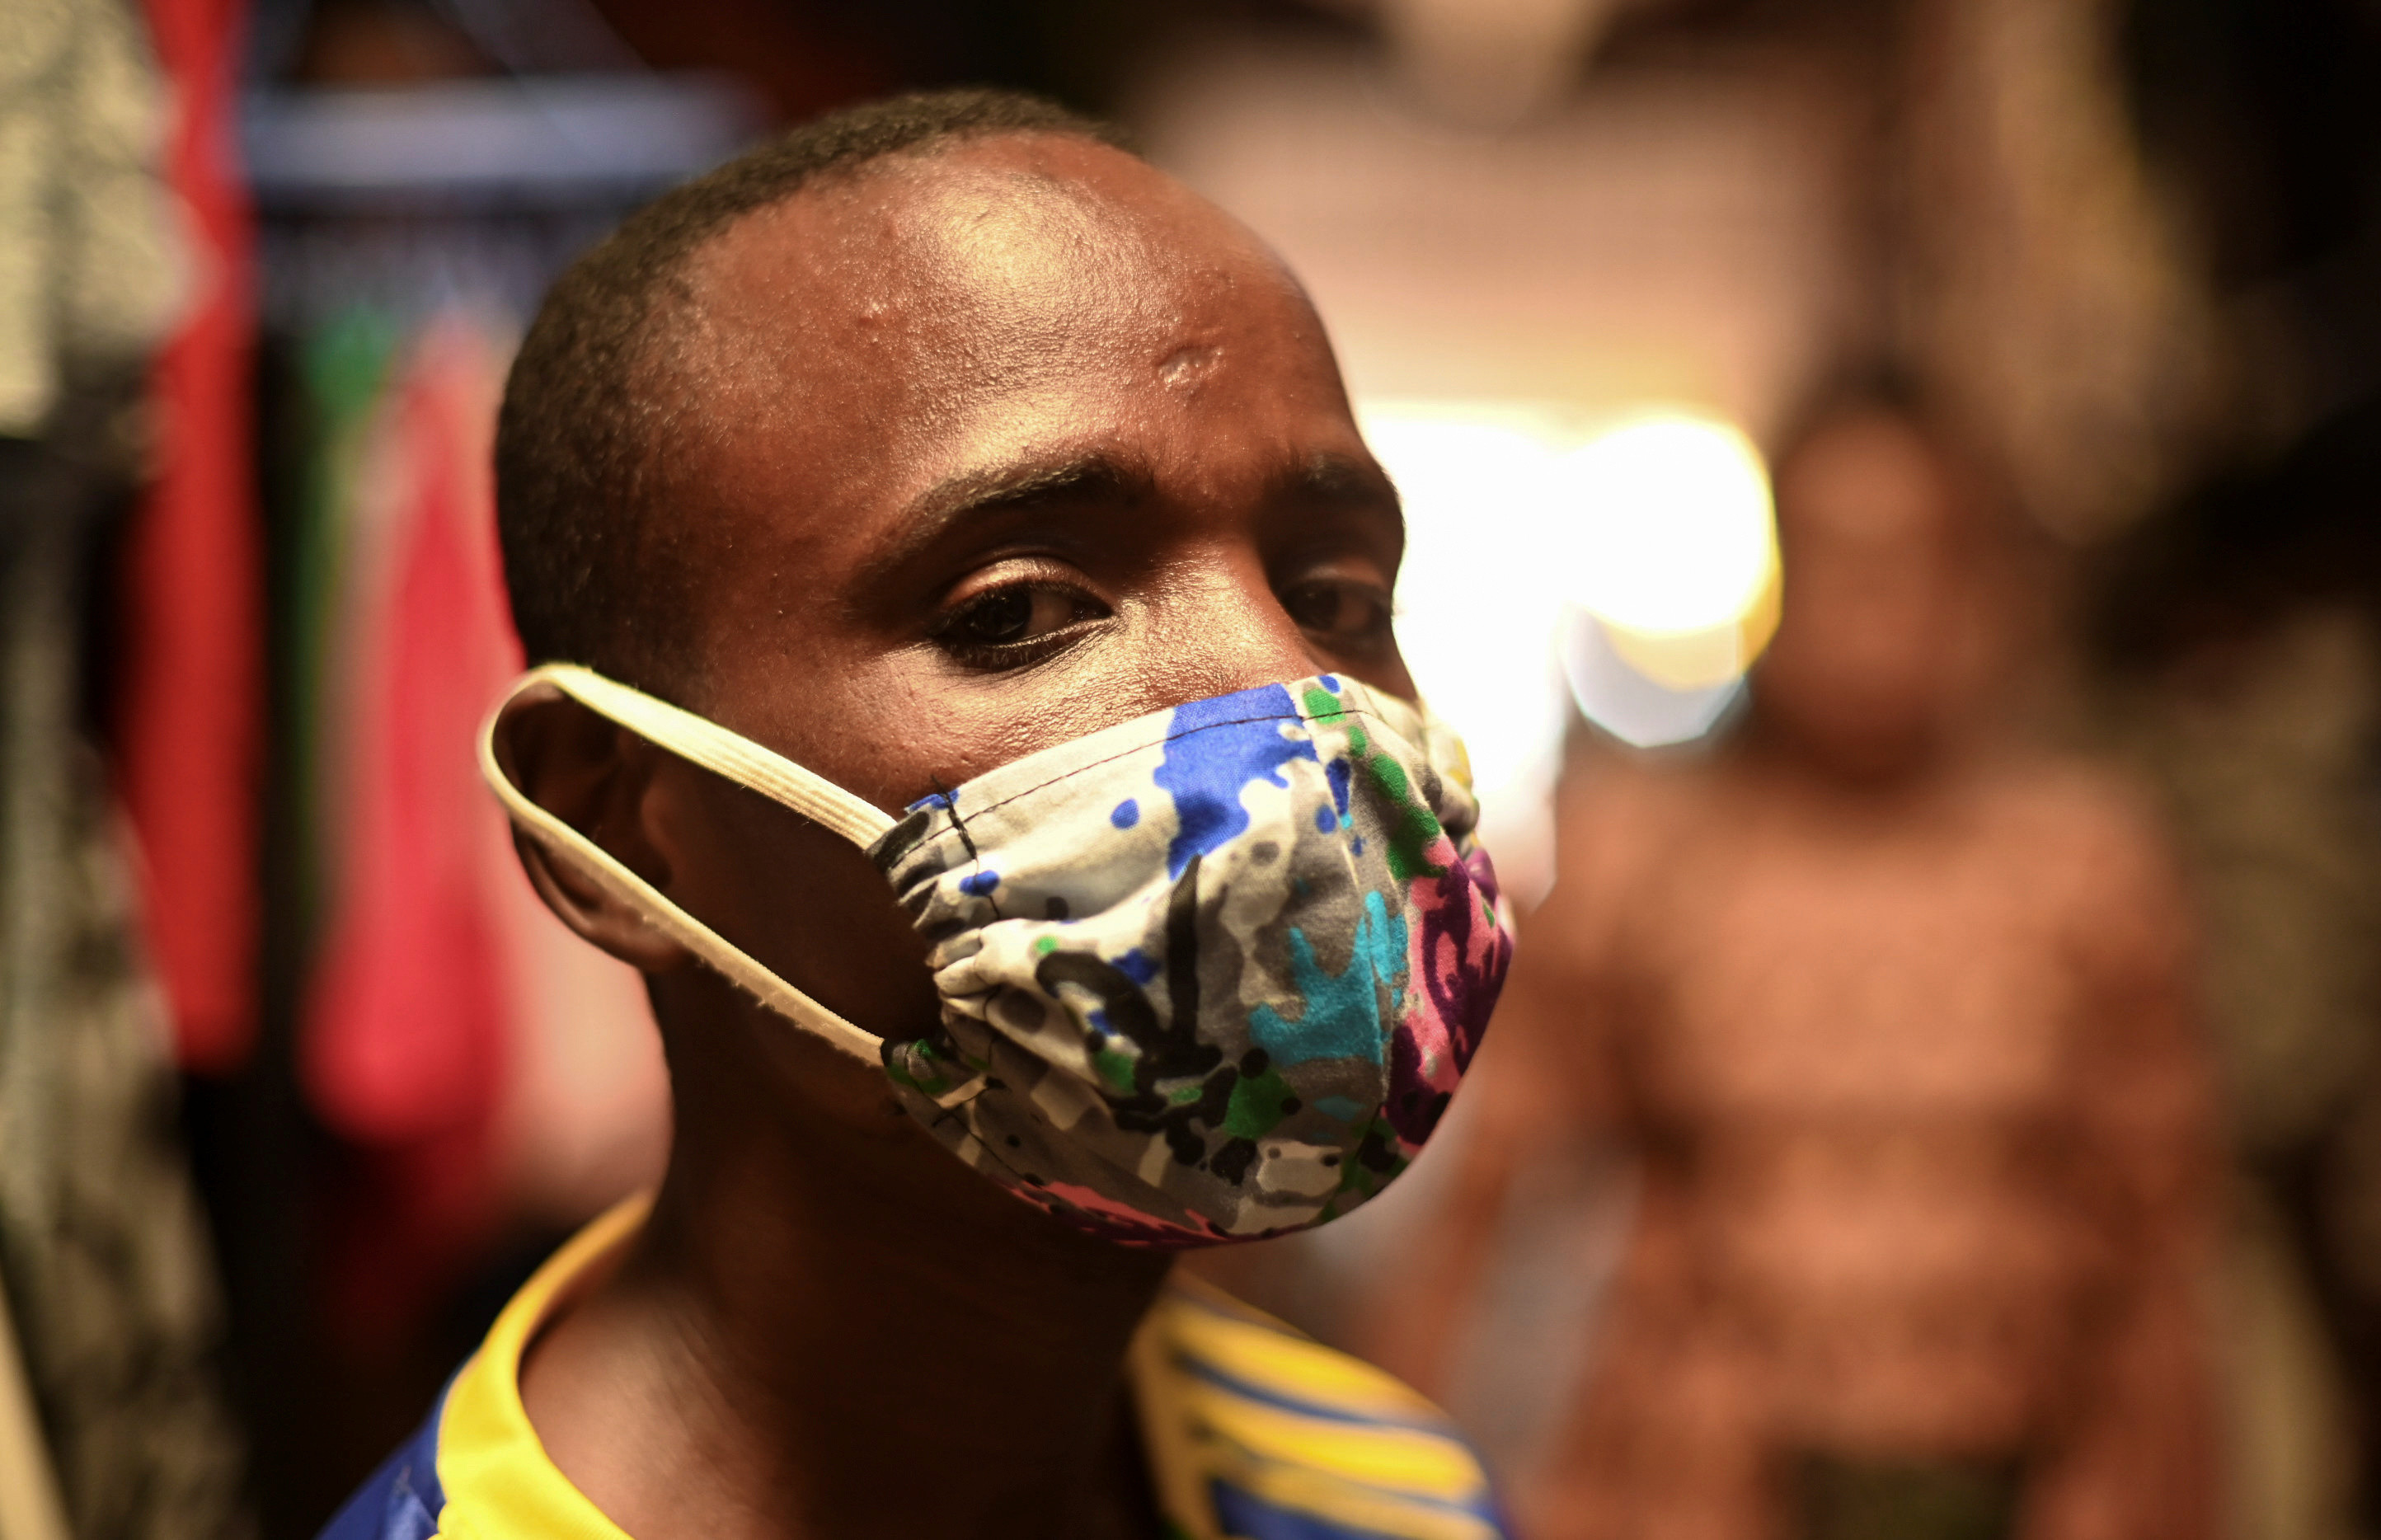 """Eugene Amuri, a vendor at the Kimironko market wears a handmade """"kitenge"""" cloth mask as he attempts to protect against the coronavirus disease (COVID-19), in Kigali, Rwanda March 17, 2020. REUTERS/Maggie Andresen - RC2TLF9JHIN5"""